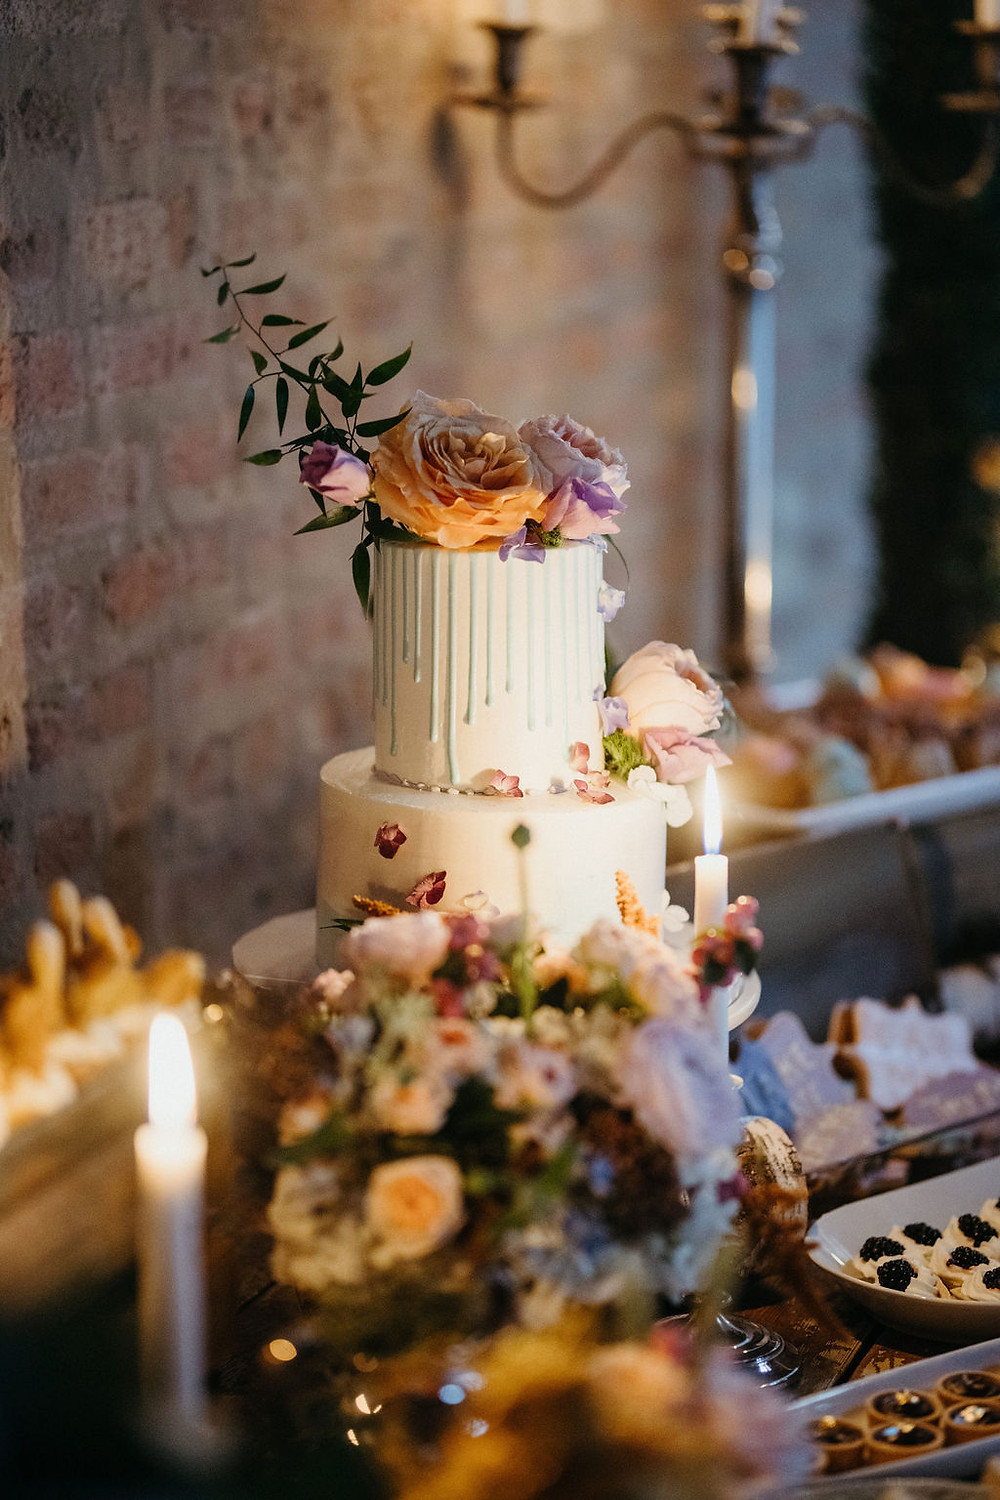 beautiful cake on a sweets table filled with vintage details